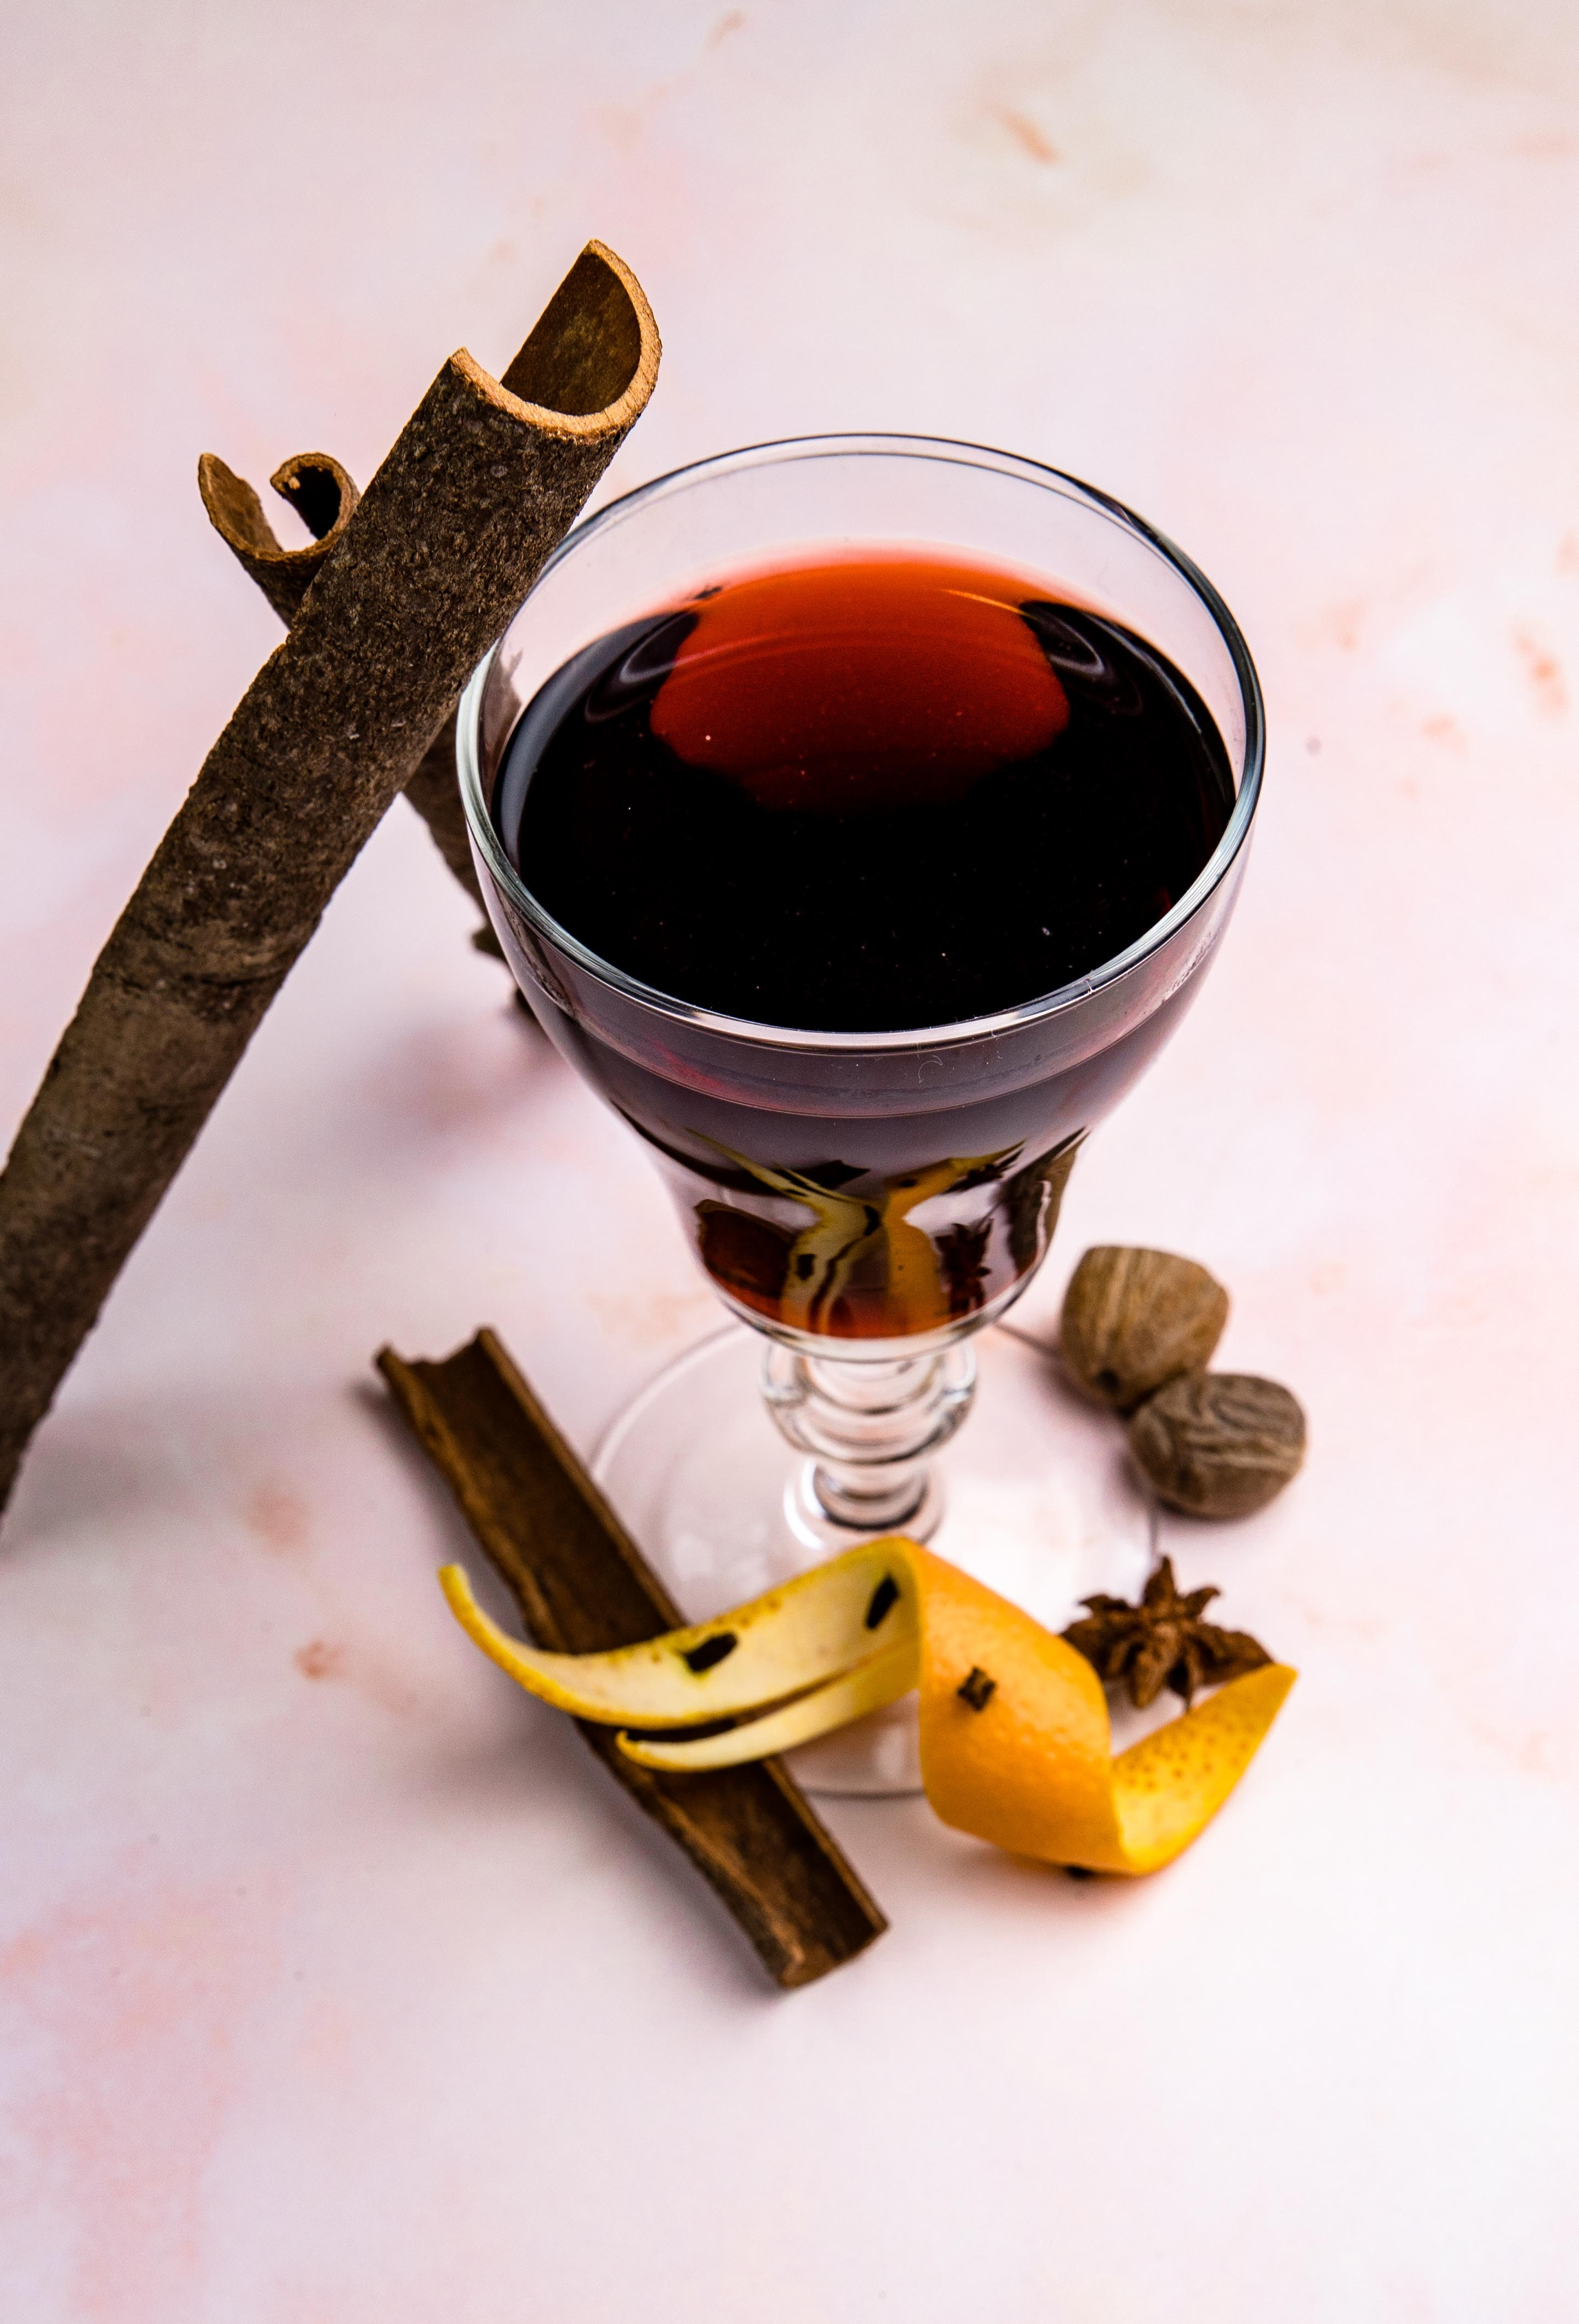 Enjoy the holiday spirit with a Nordic twist on mulled wine